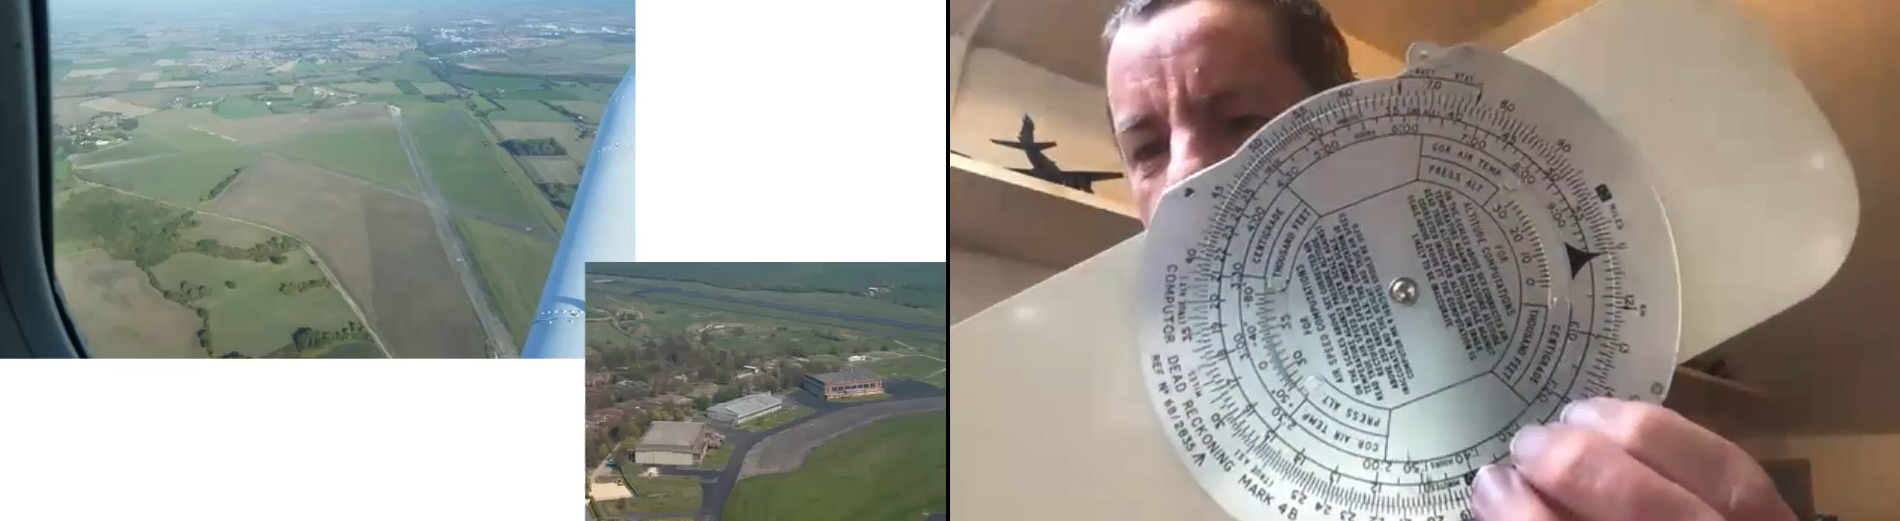 Volunteer John shows the camera an analogue computer - a silver disc with calibrations and numbers showing around the circle. The left-hand side of the image shows photos taken from a plane window over green fields and houses.